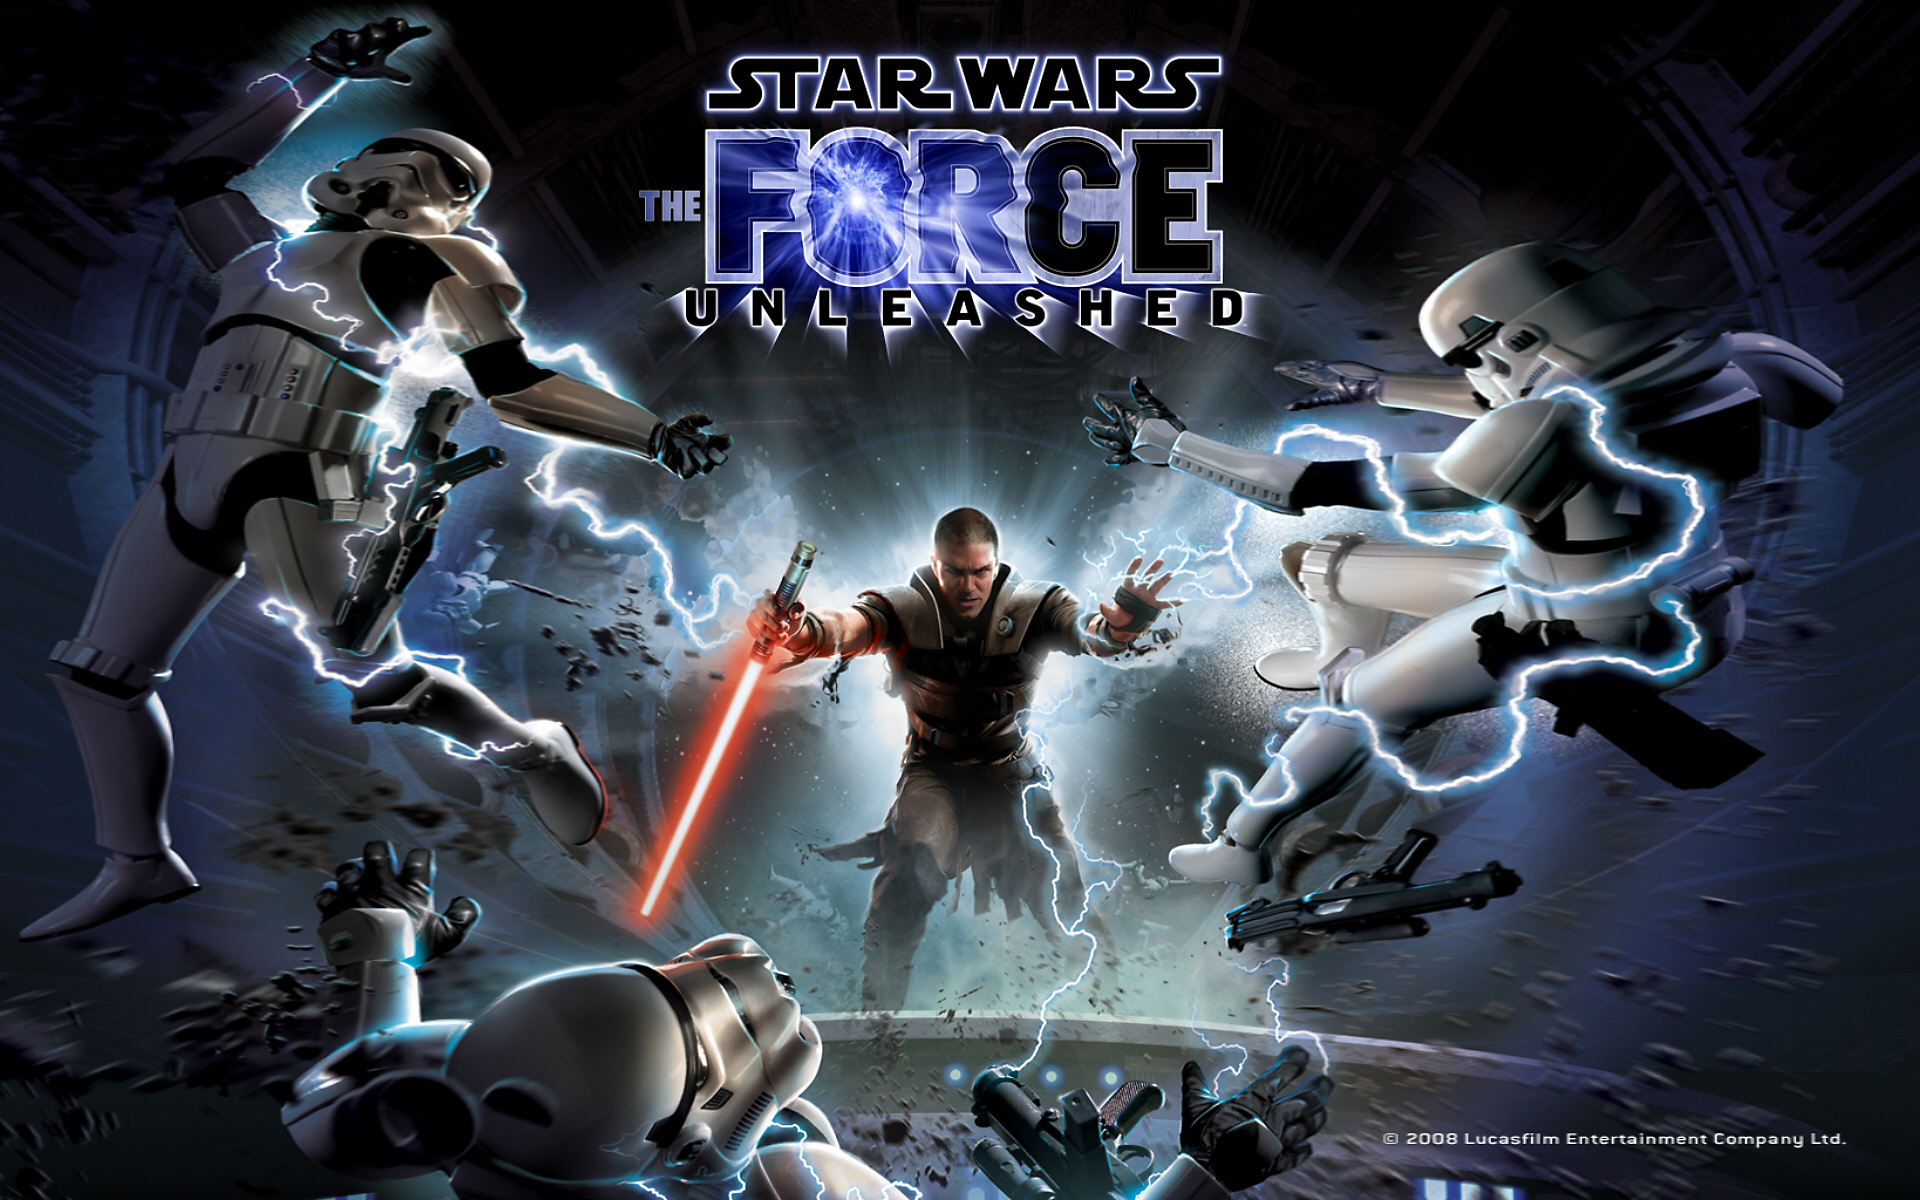 Star Wars The Force Unleashed 2 Wallpapers: STAR WARS / The Force Unleashed II, Darth Maul Wallpaper